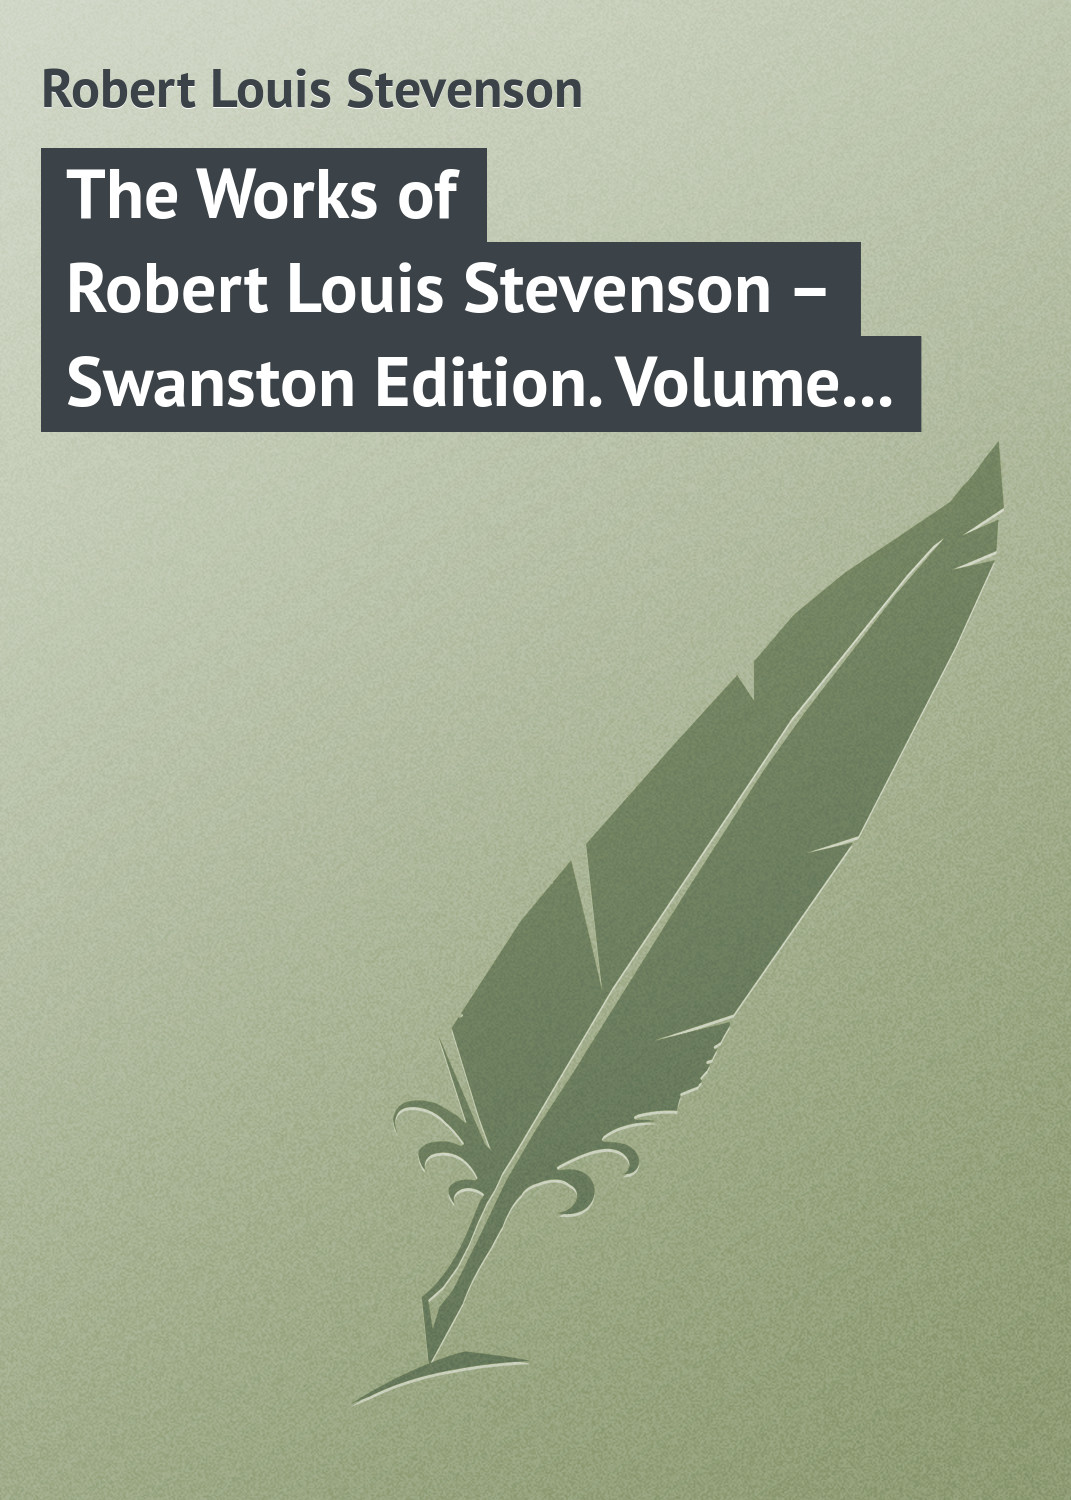 Роберт Льюис Стивенсон The Works of Robert Louis Stevenson – Swanston Edition. Volume 17 плед флисовый 130х170 см printio дед мороз